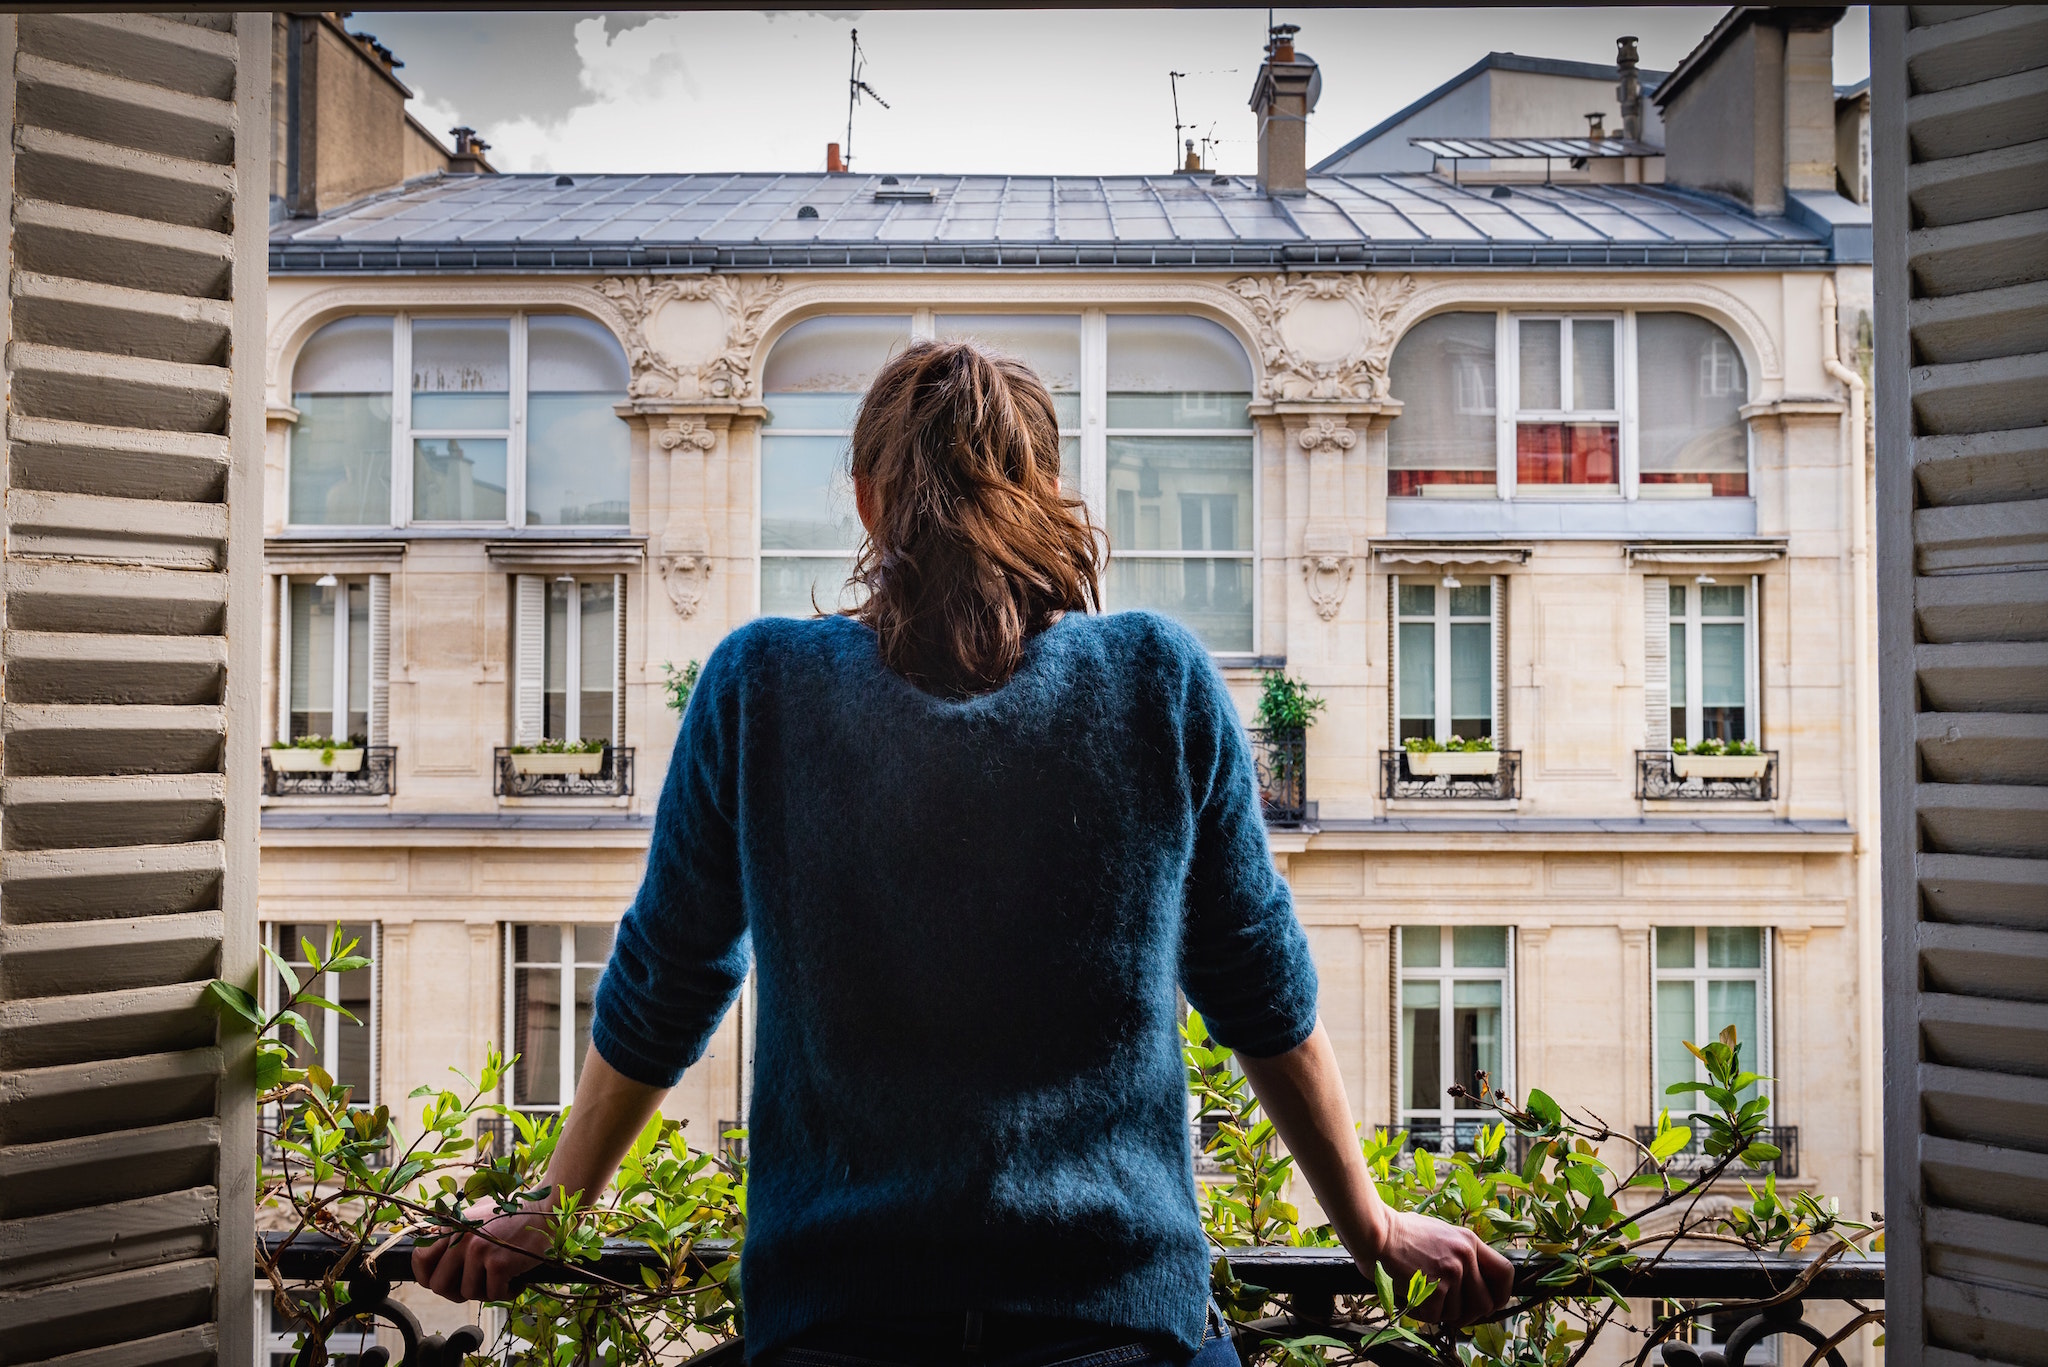 A woman, wearing a blue sweater and her hair in a ponytail, stands at her open window in Paris. In front of her is a planter box of green leaves, and she looks out at the apartment across the way.